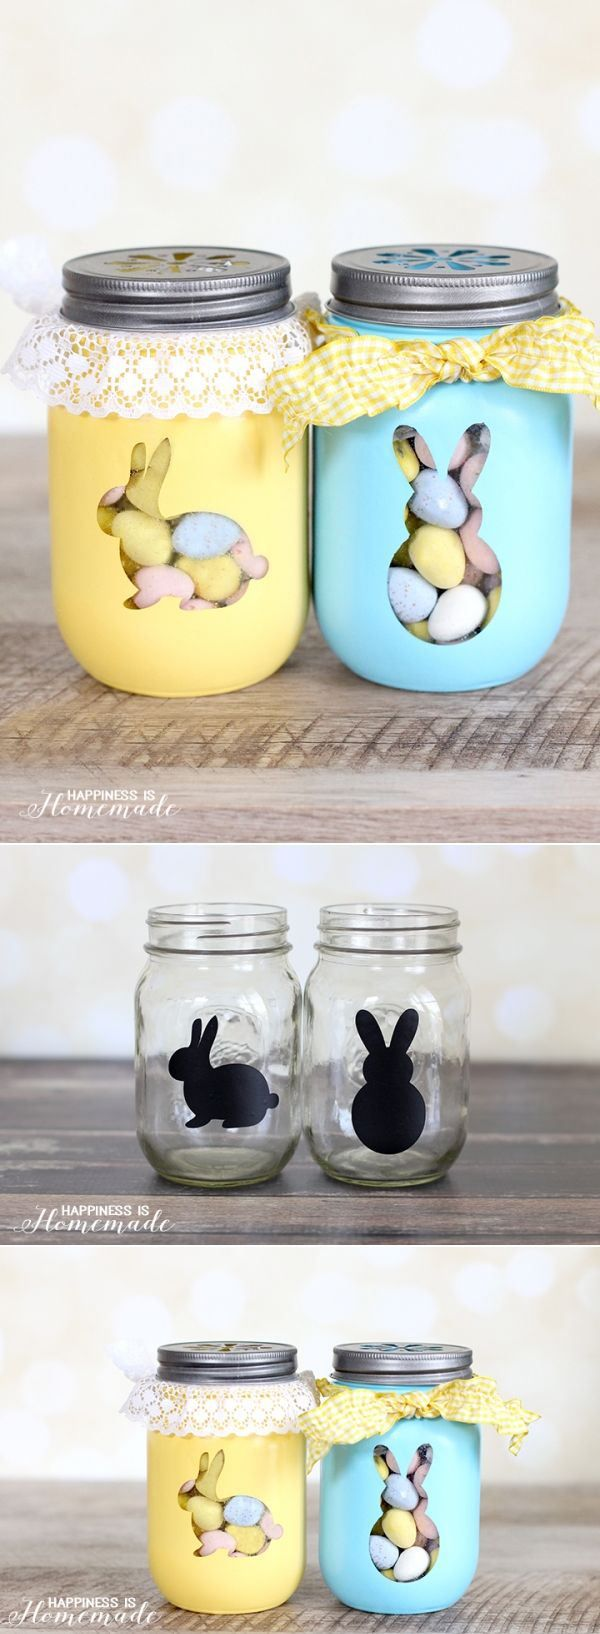 Easter Bunny treat jars - so cute! These are really easy to make and are such lovely gifts!